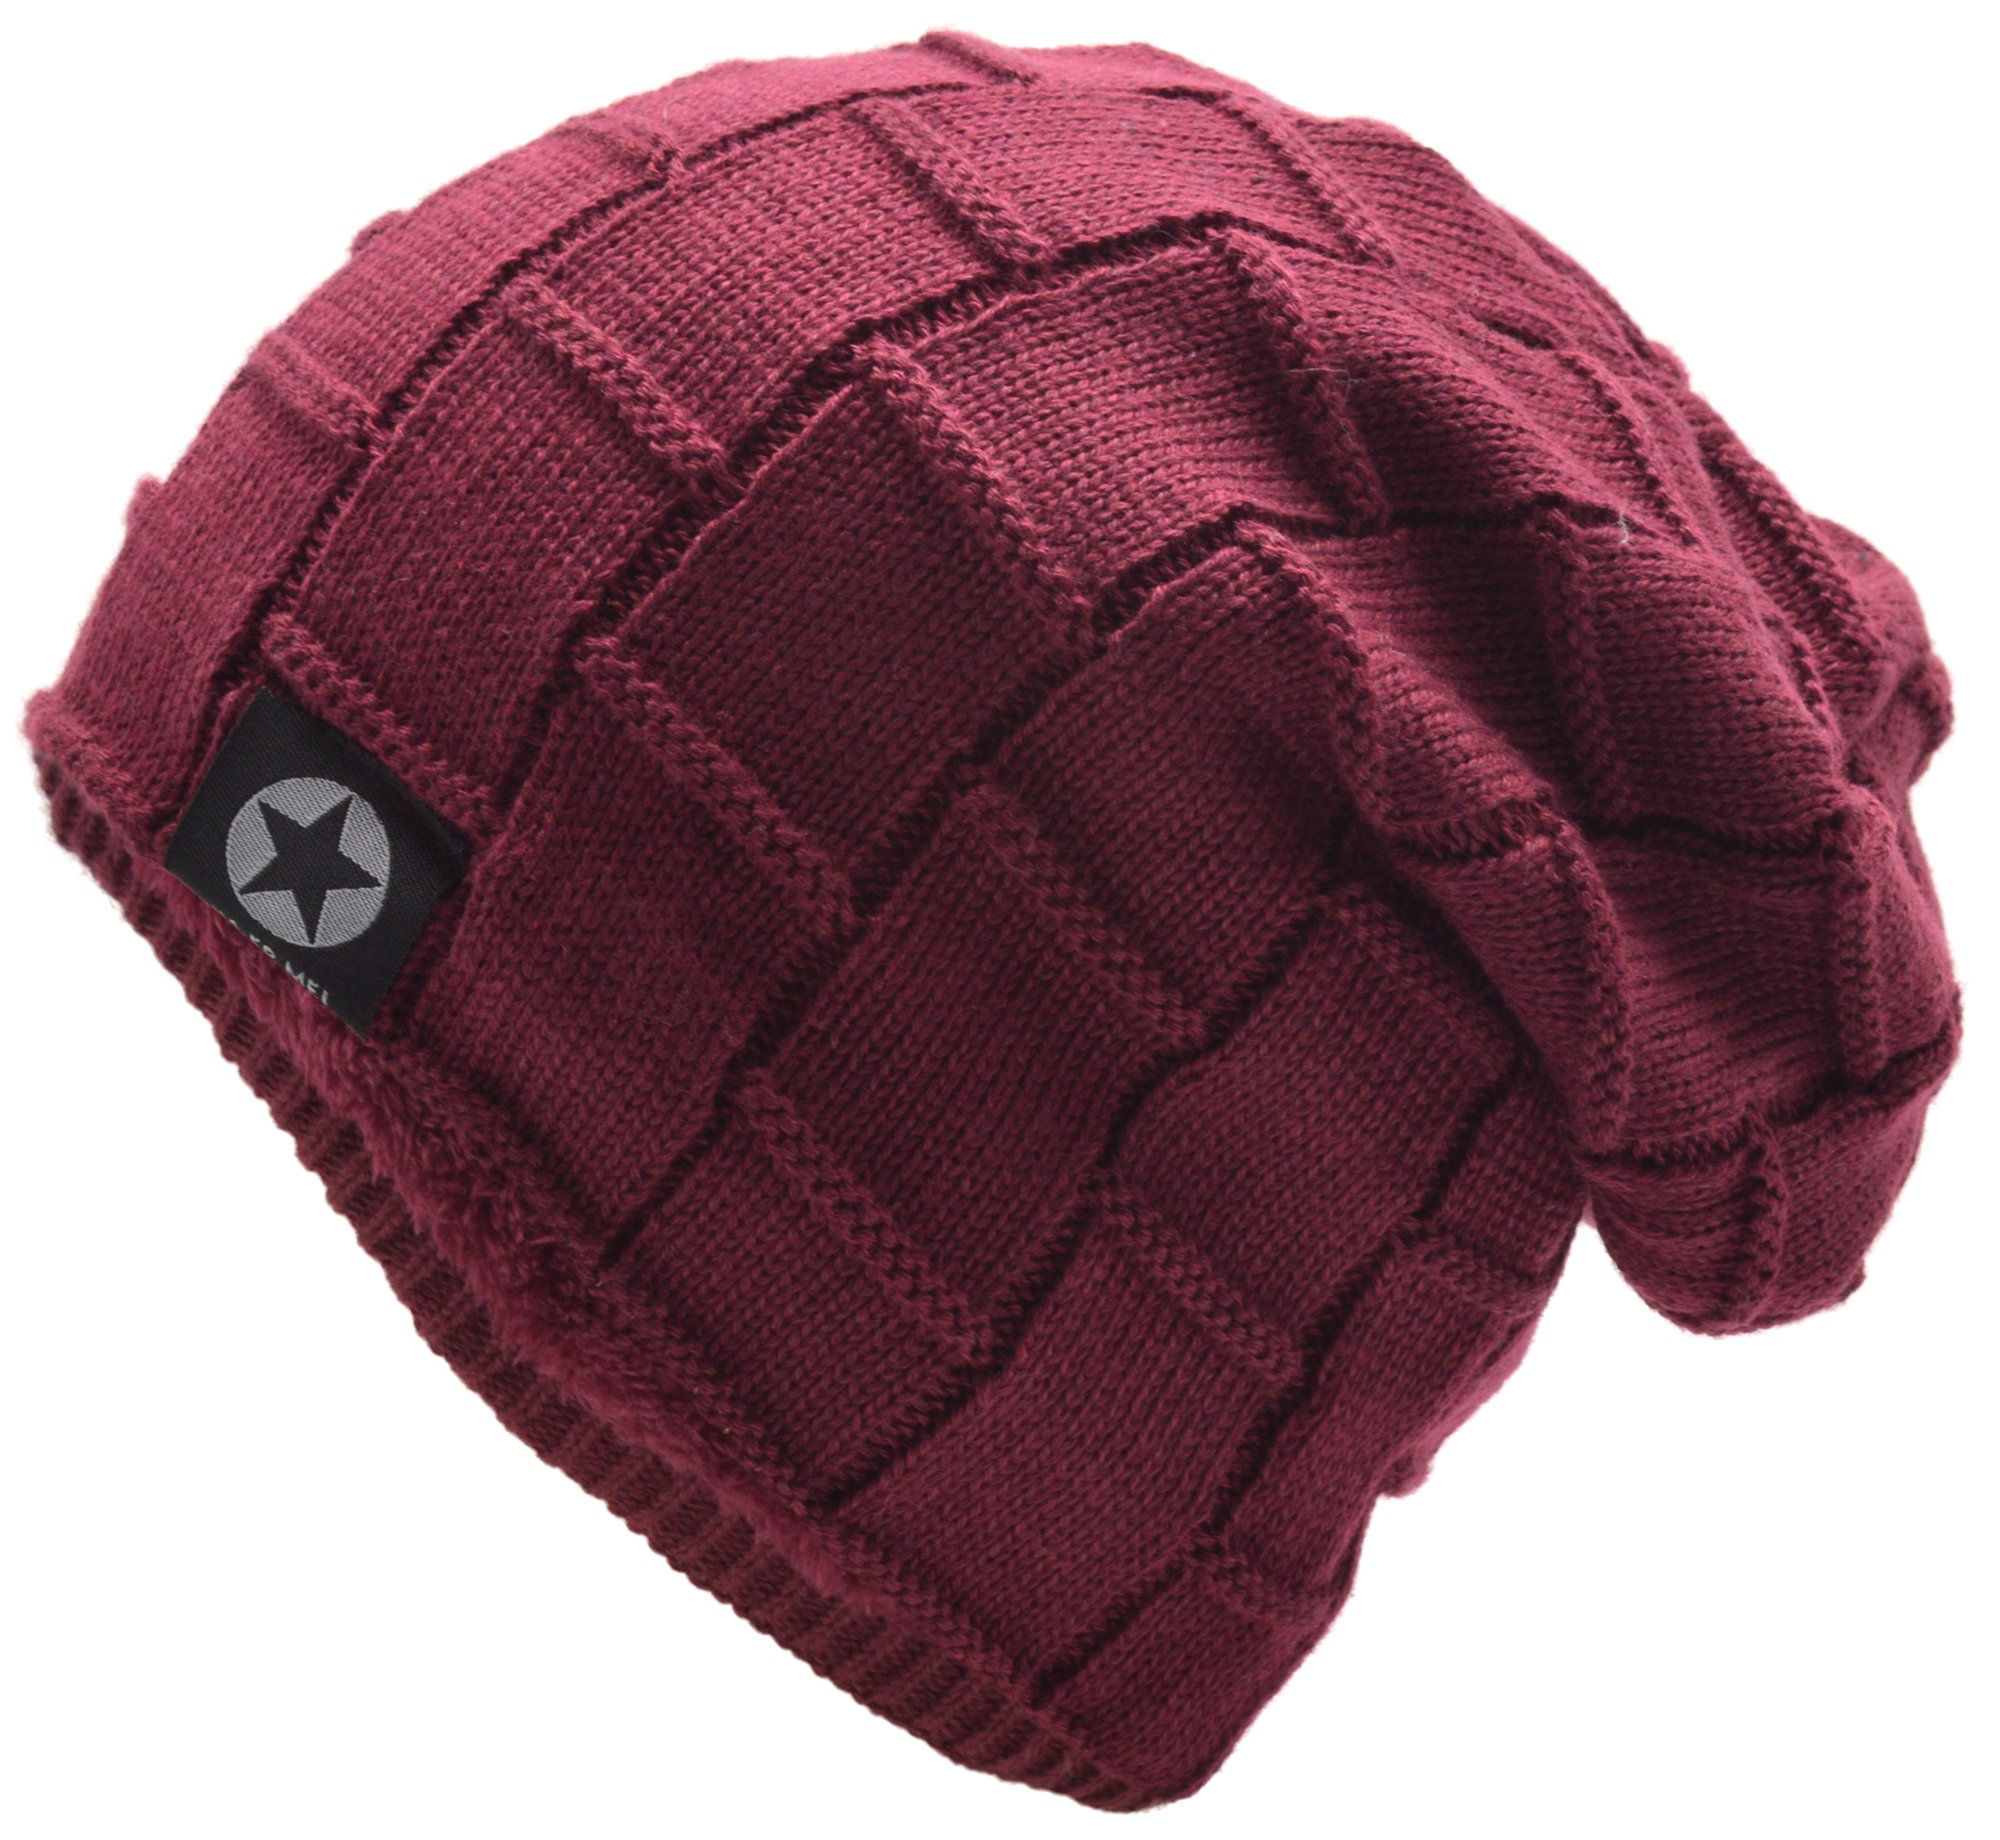 Mens Winter Warm Wool Fleece Lined Knit Beanie Hat Baggy Oversize Slouchy Stocking Skull Cap Ski Hat For Men, 6 Color, Stylish and Soft Beanie (Wine Red)